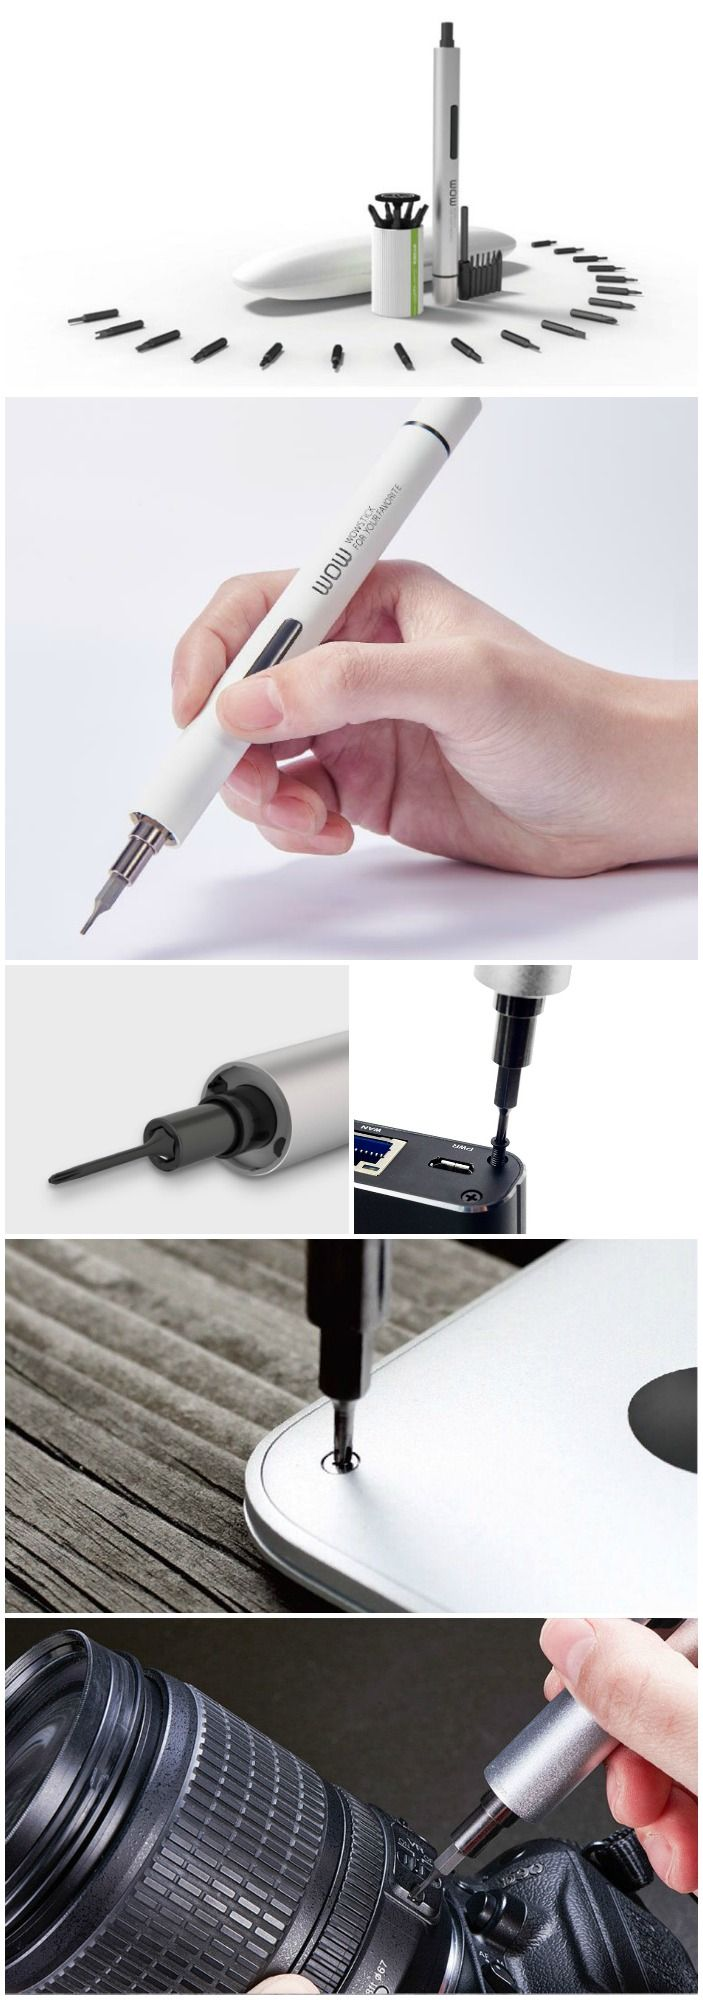 25 best ideas about inventions on pinterest amazing for Cool electronic gadgets to make at home